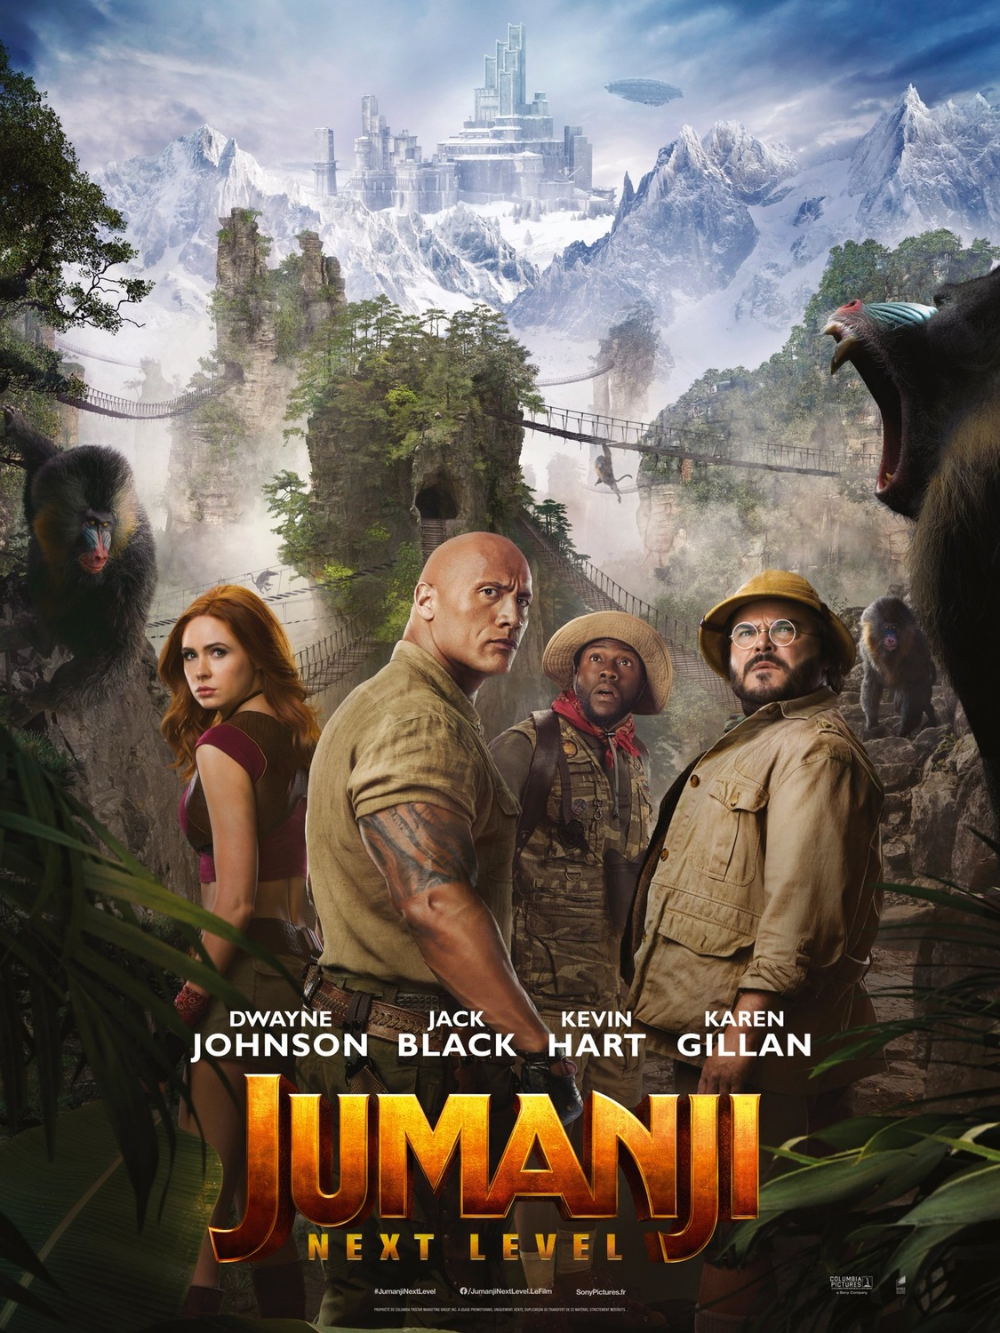 Return To The Main Poster Page For Jumanji The Next Level 2 Of 2 Free Movies Online Full Movies Online Free Streaming Movies Free